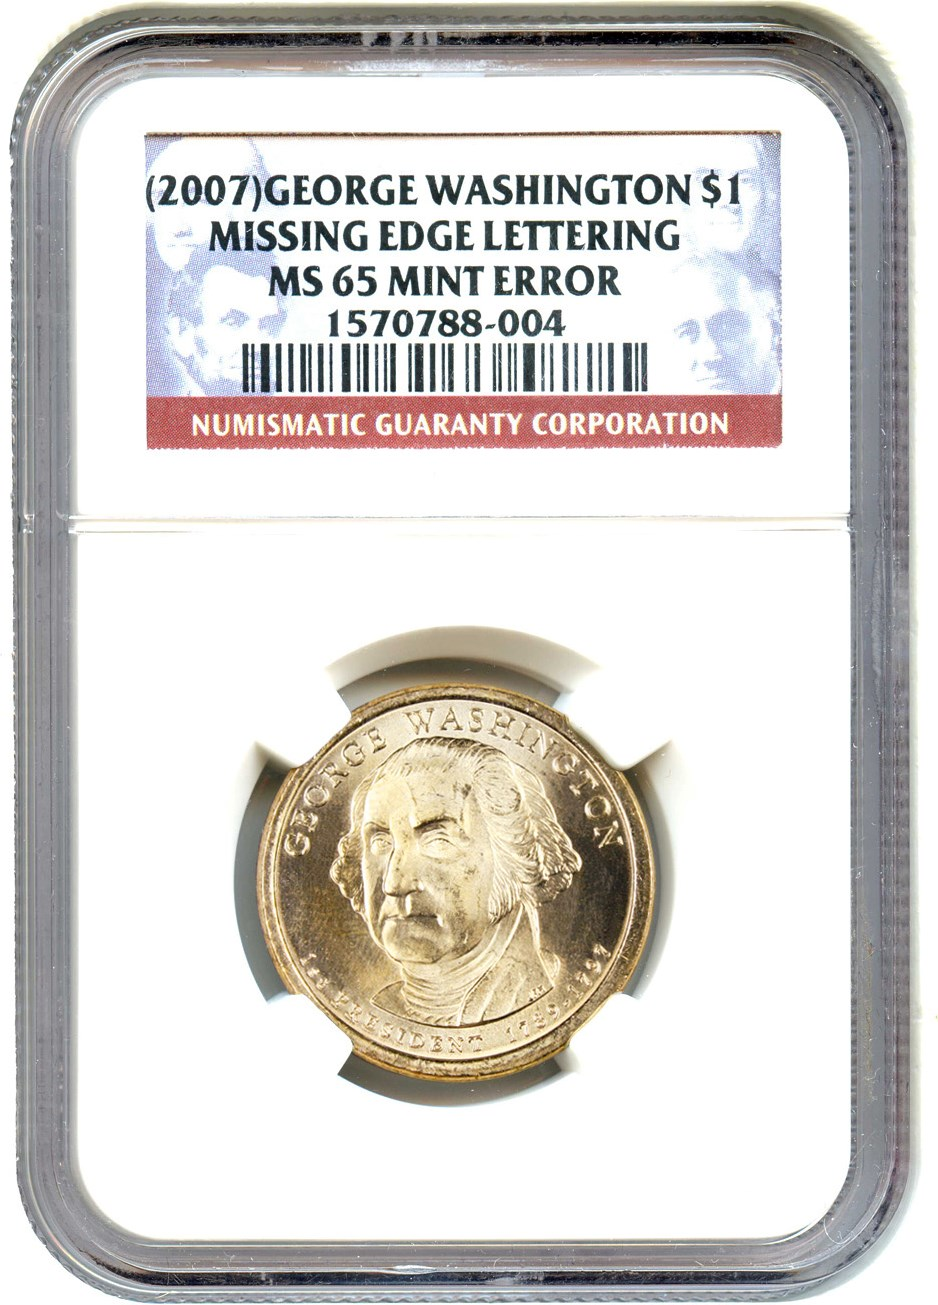 Collectors Corner - (2007) $1 Missing Edge Lettering George